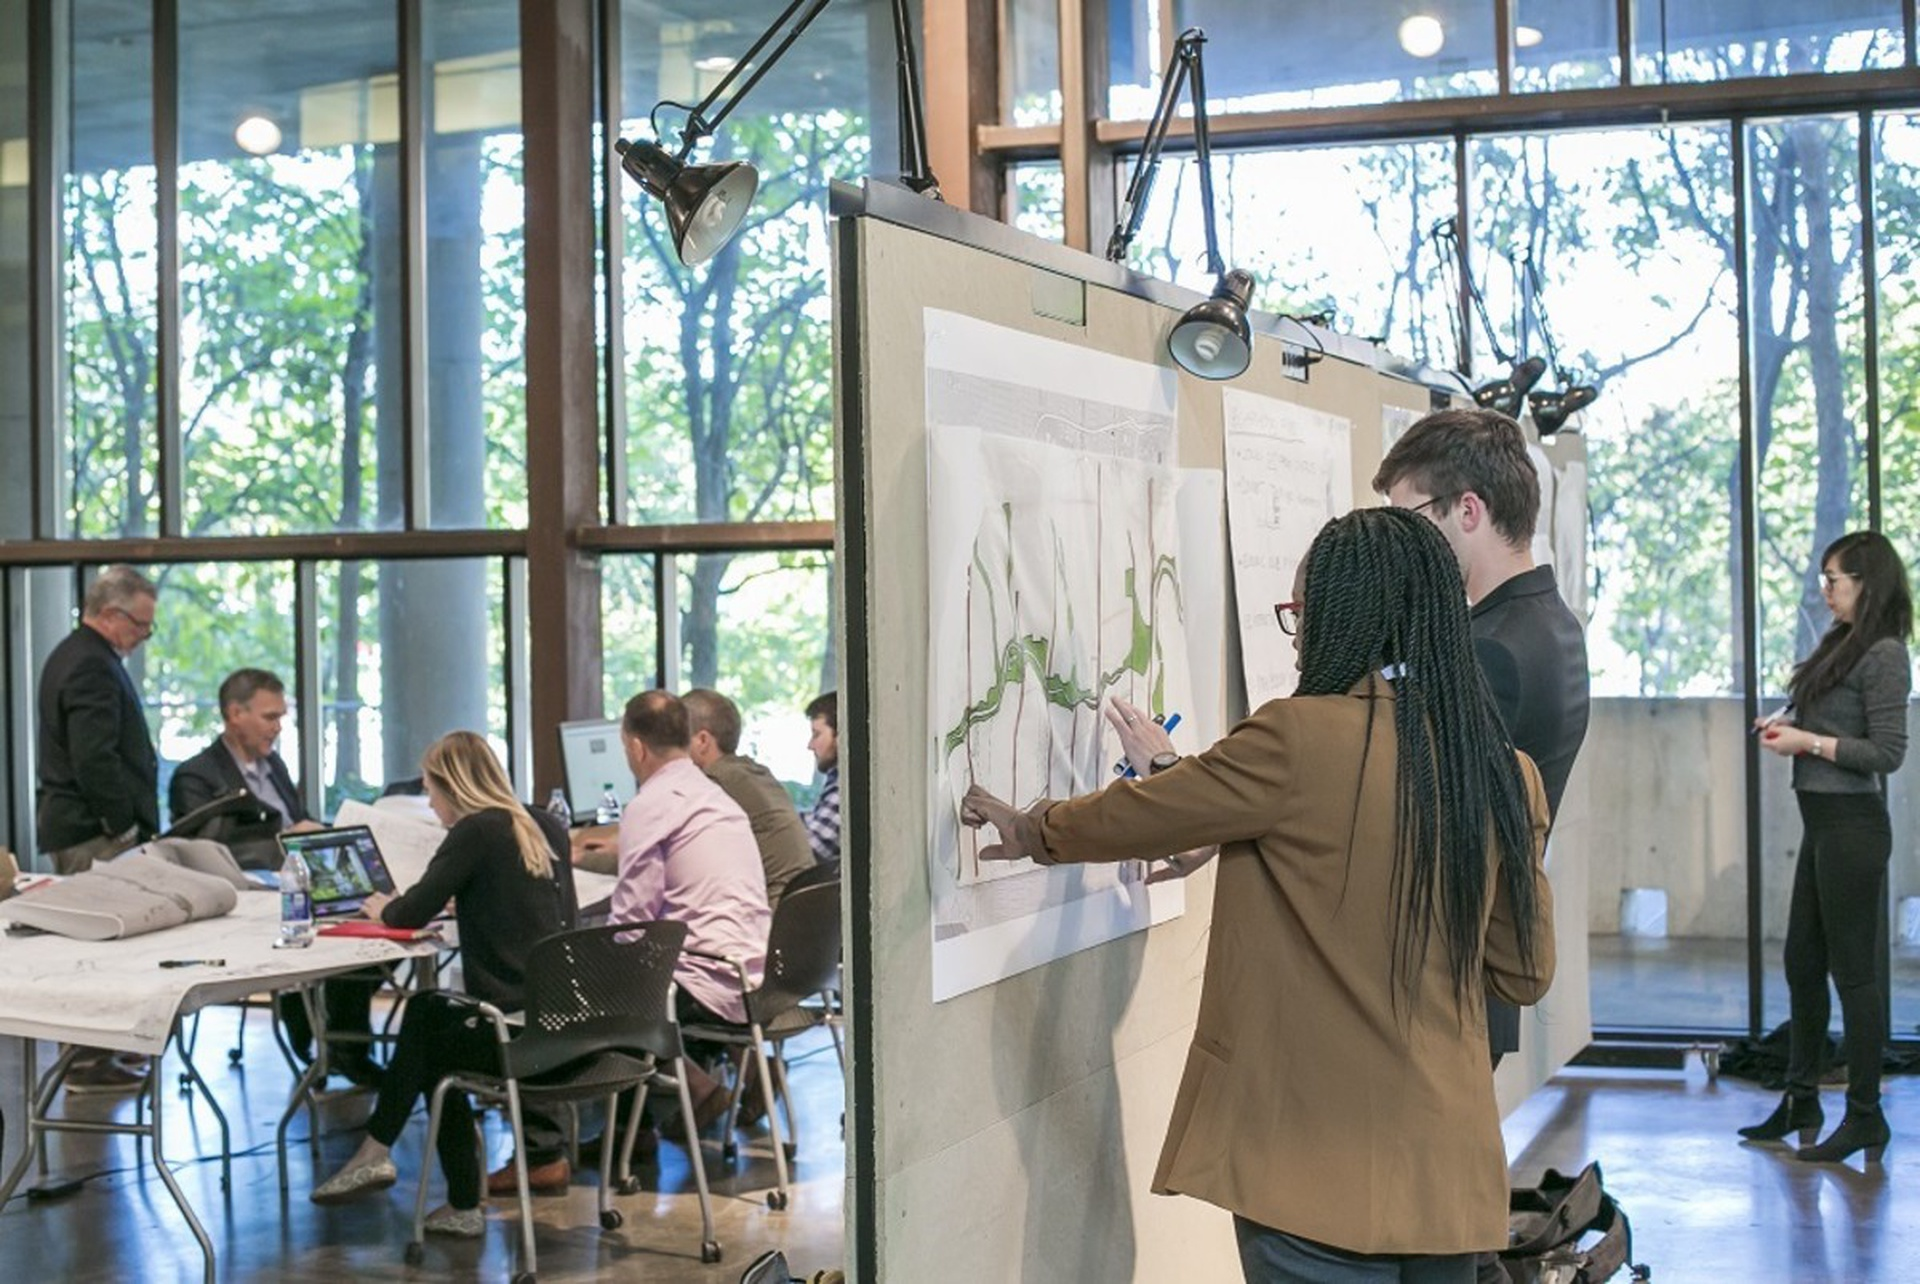 University Led Design Teams To Offer New Vision For Olentangy River Corridor